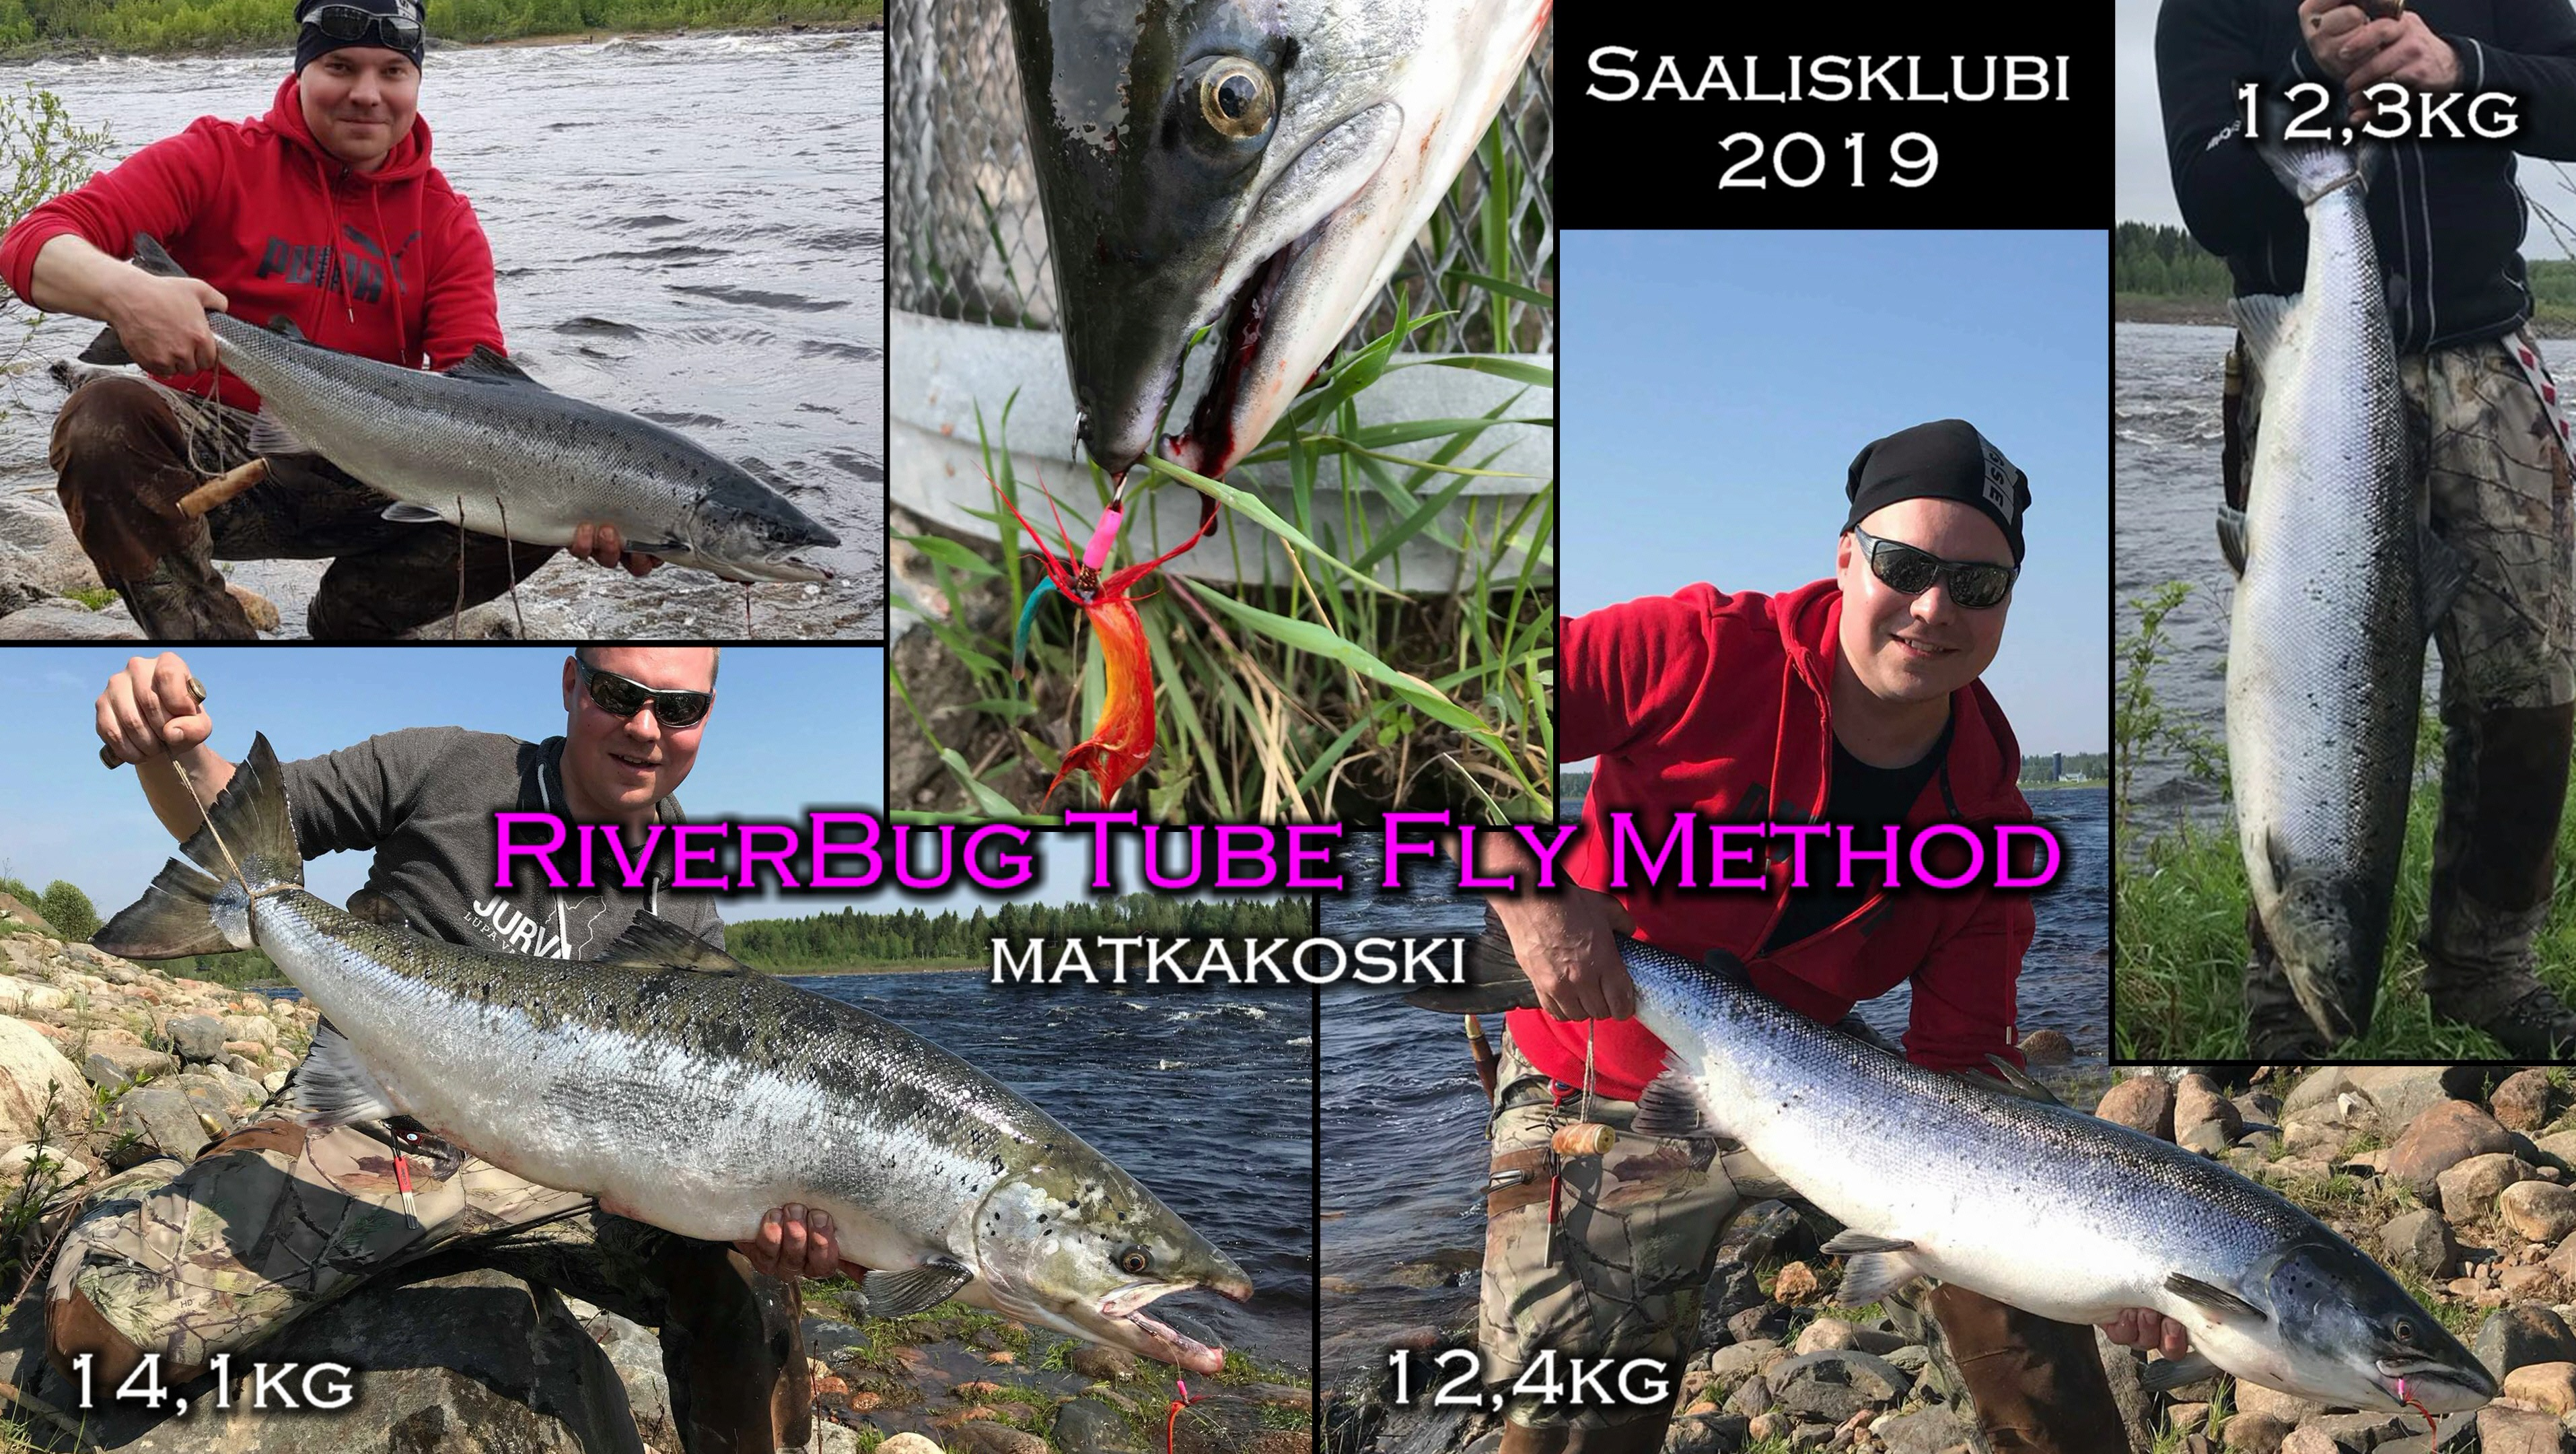 RiverBug Tube Fly feedbacks from user. #putkiperhot #putkiperho #matkakoski #spinfluga #salmon #lohi #lax